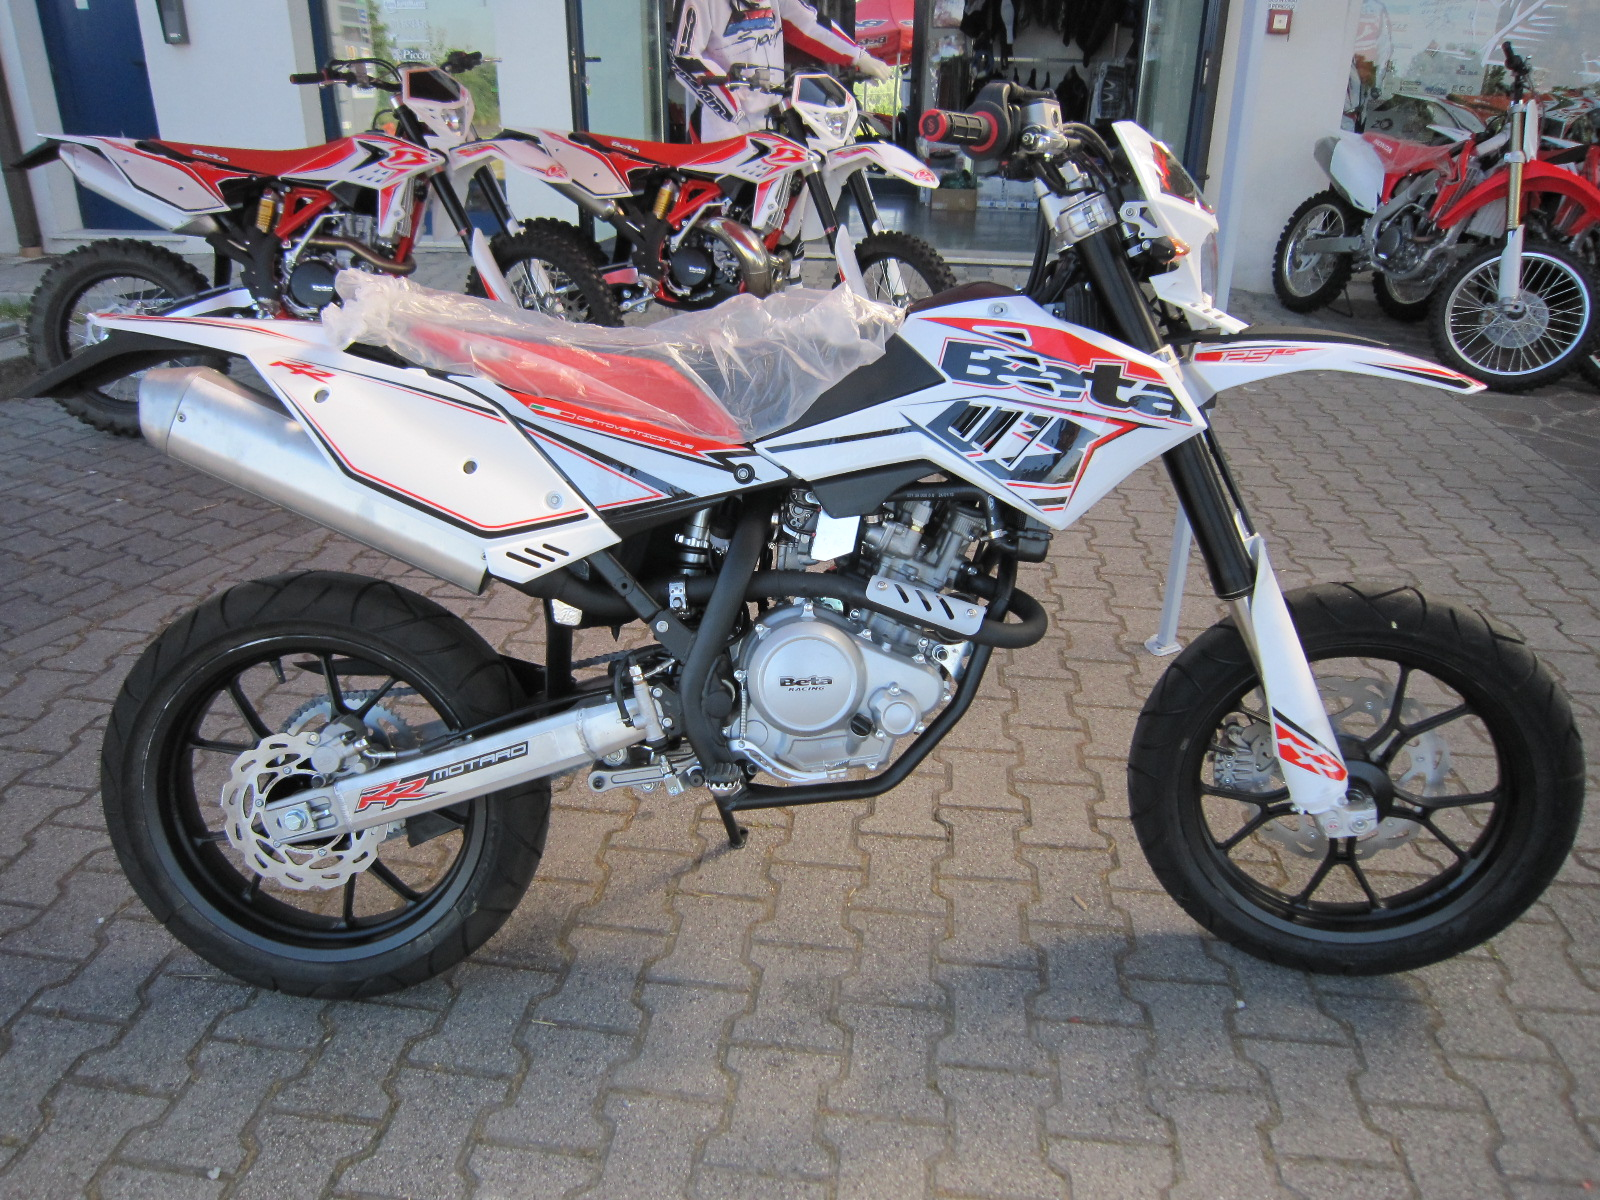 Beta RR 125 4T Motard 2013 images #63601